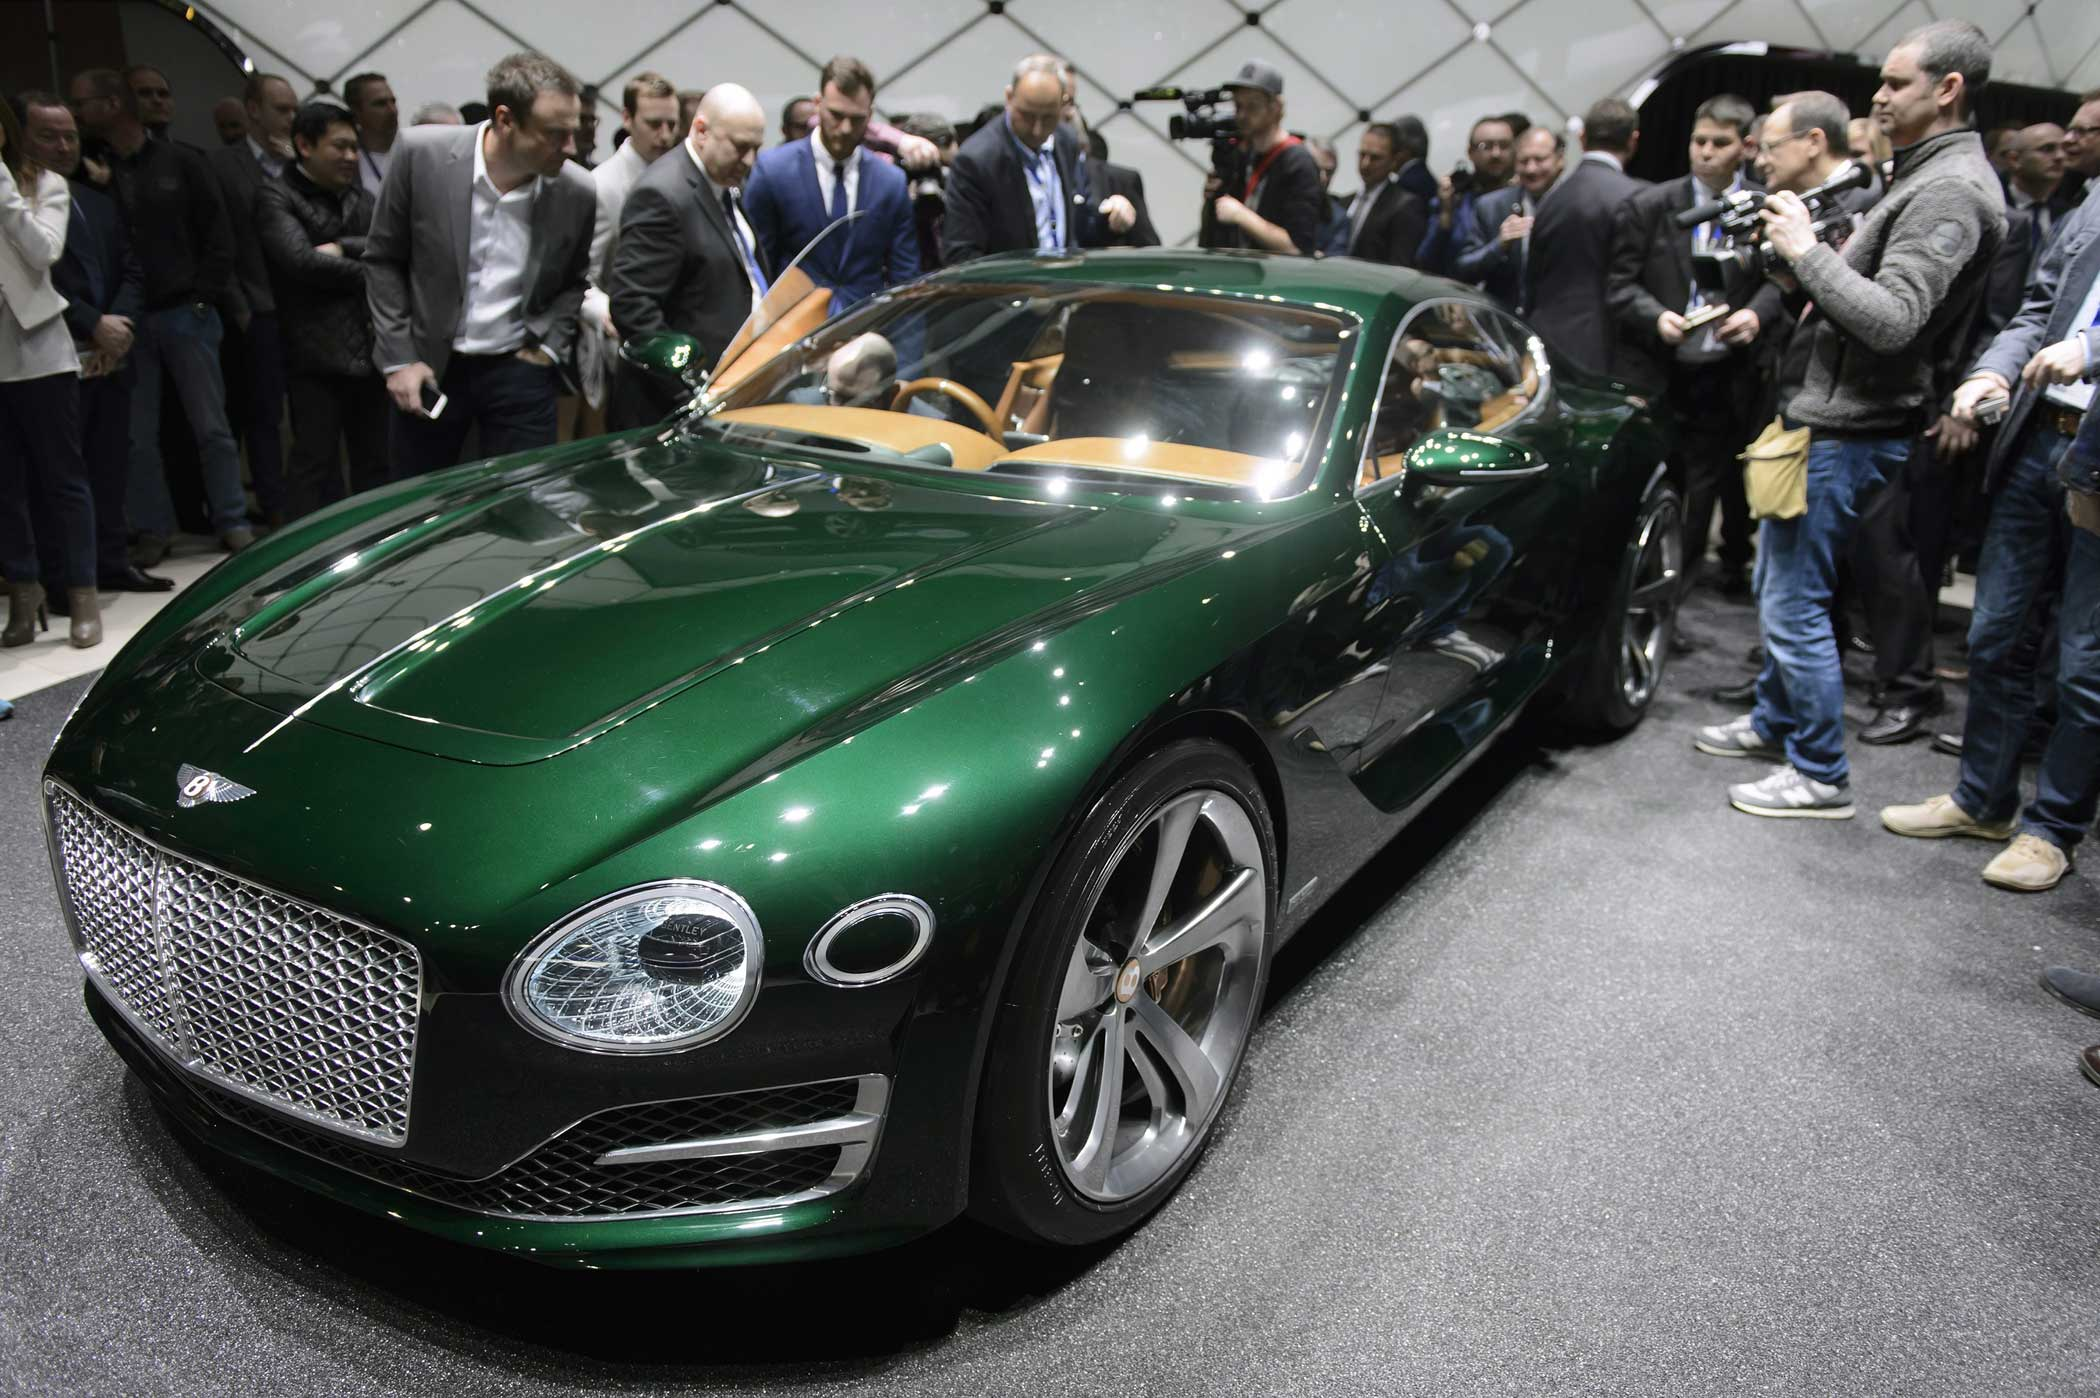 Bentley EXP 10 Speed 6. This concept from the tony British marque hints at the new direction the company's styling will take in the future.